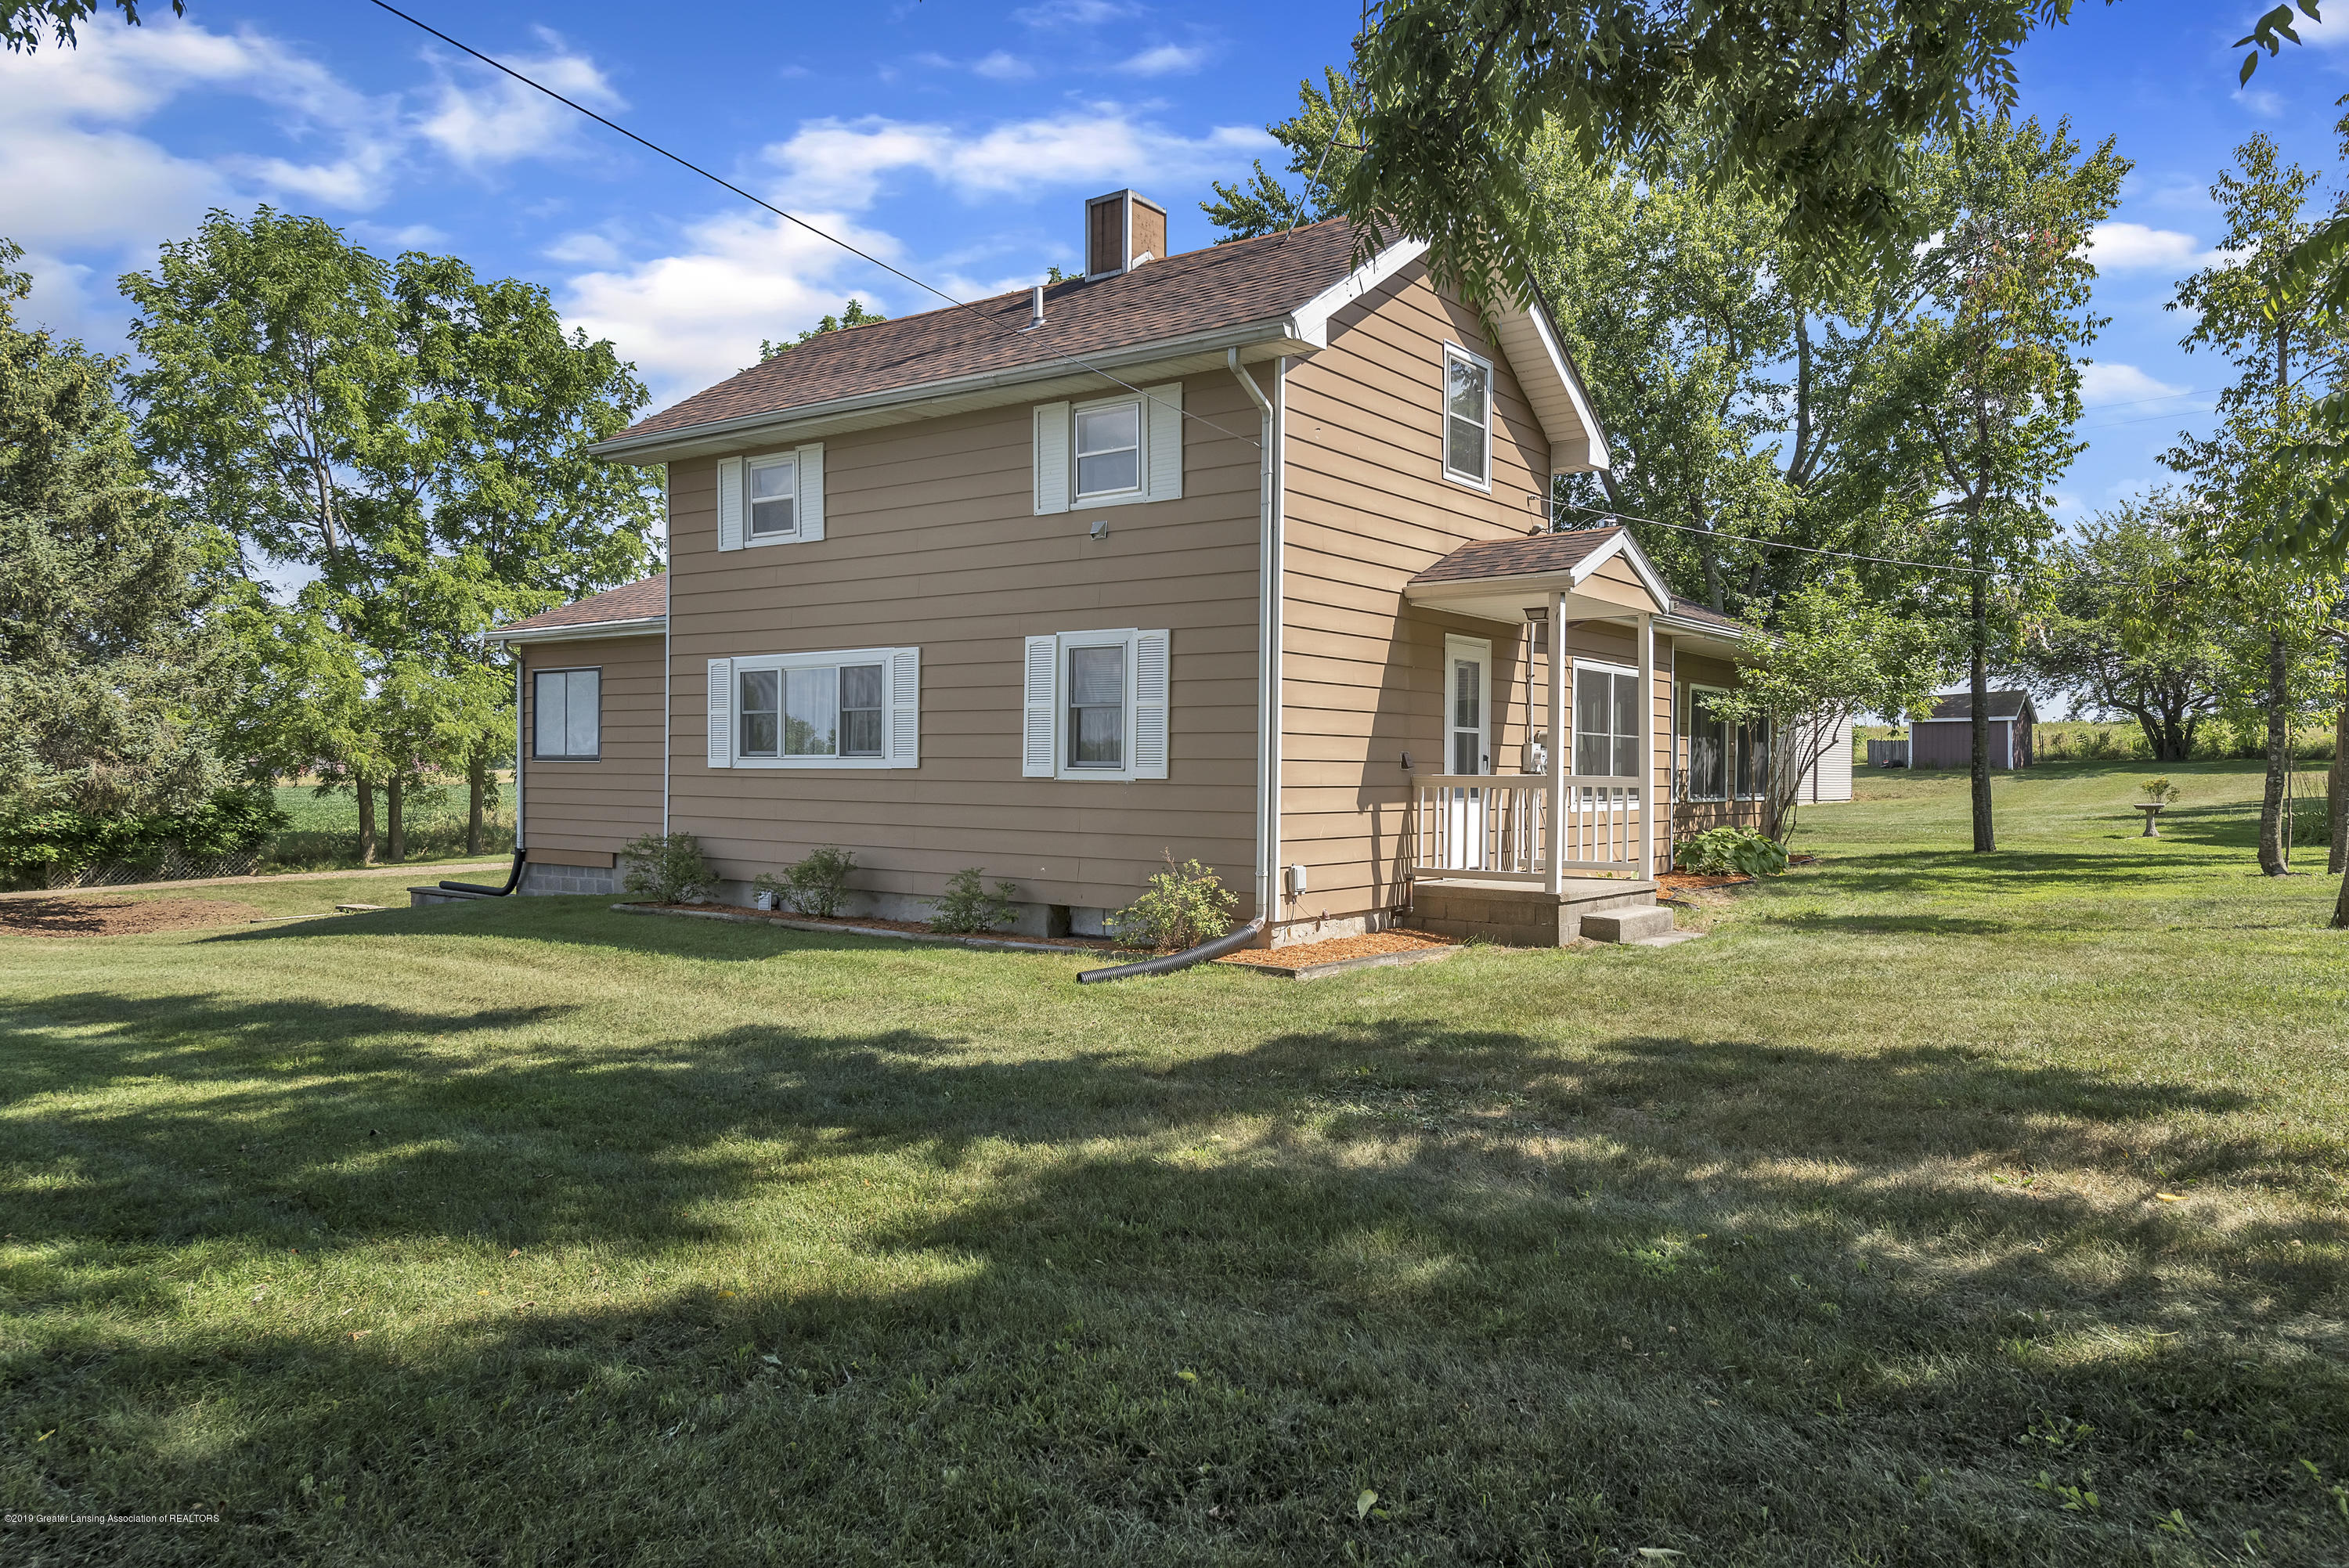 450 Noble Rd - 450-Noble-Rd-Williamston-MI-48895-window - 8